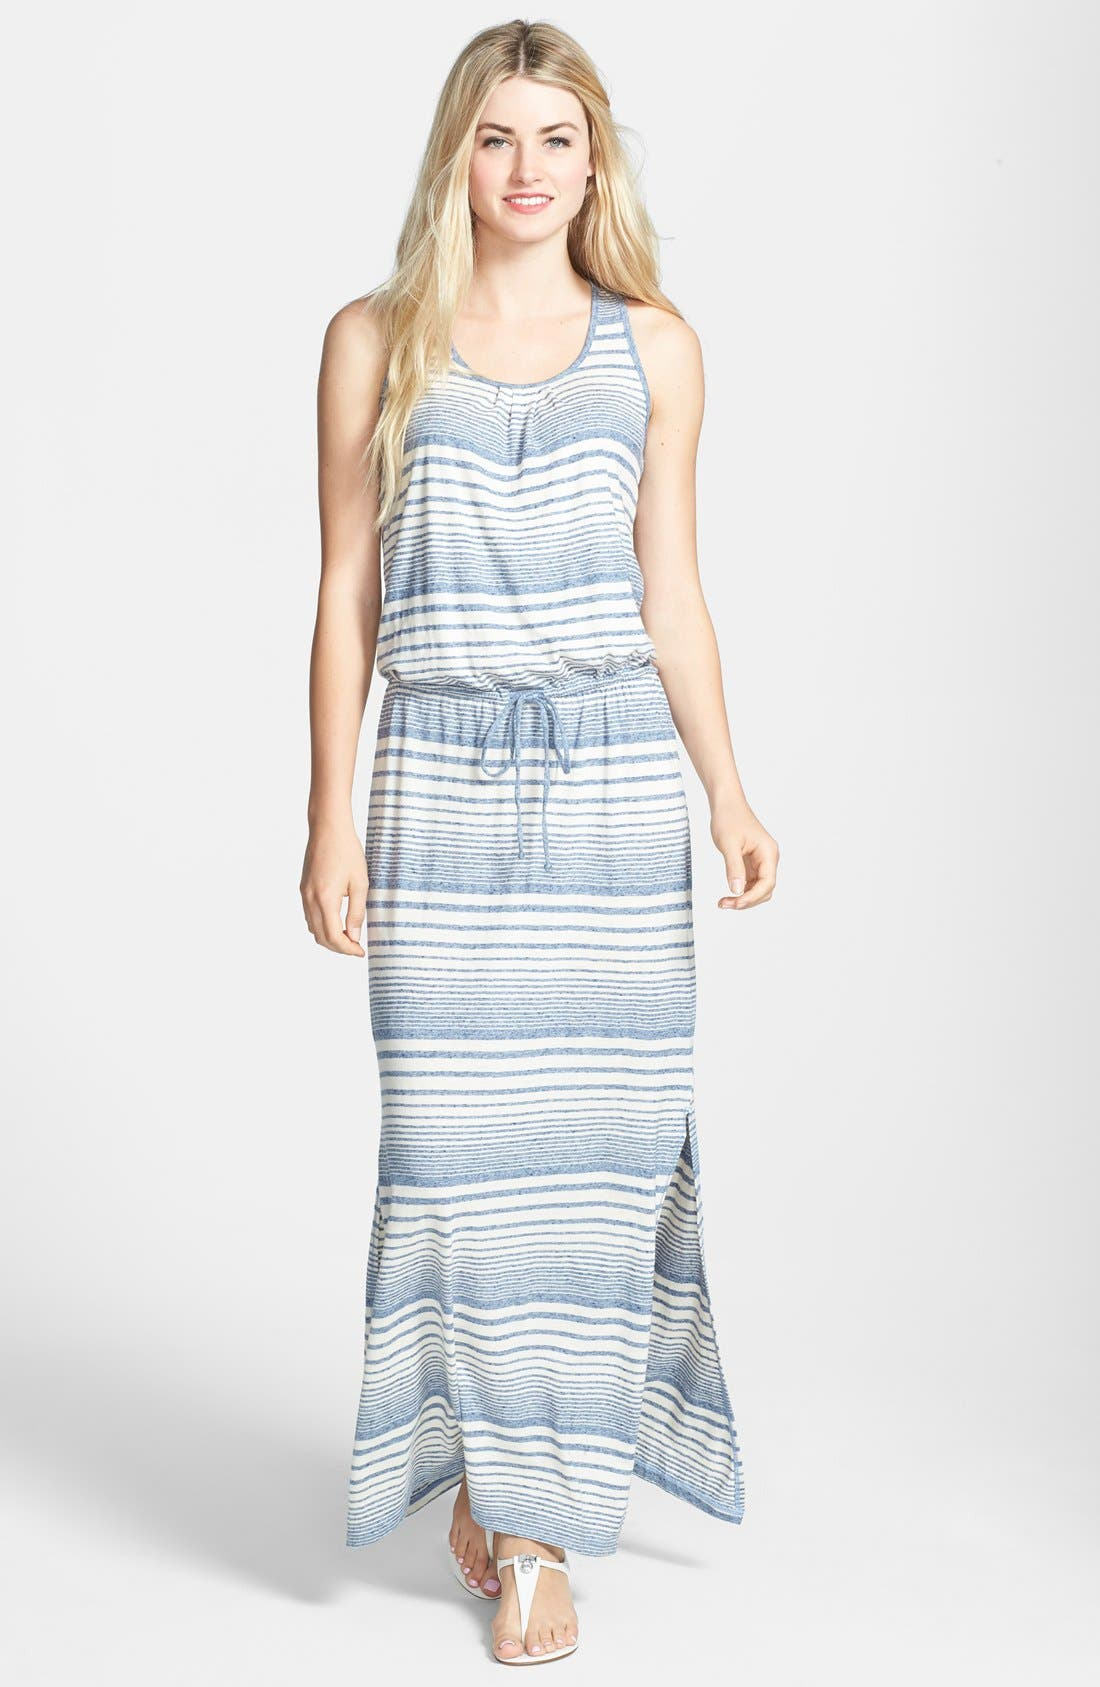 Up for sale is a new knit maxi dress from C&C California. It features a wide neckline, elbow-length sleeves, elastic waistband with drawstring, and long slits at the side hems. The fabric is 41% polyester, 36% cotton, and 23% rayon - machine wash/tumble dry.